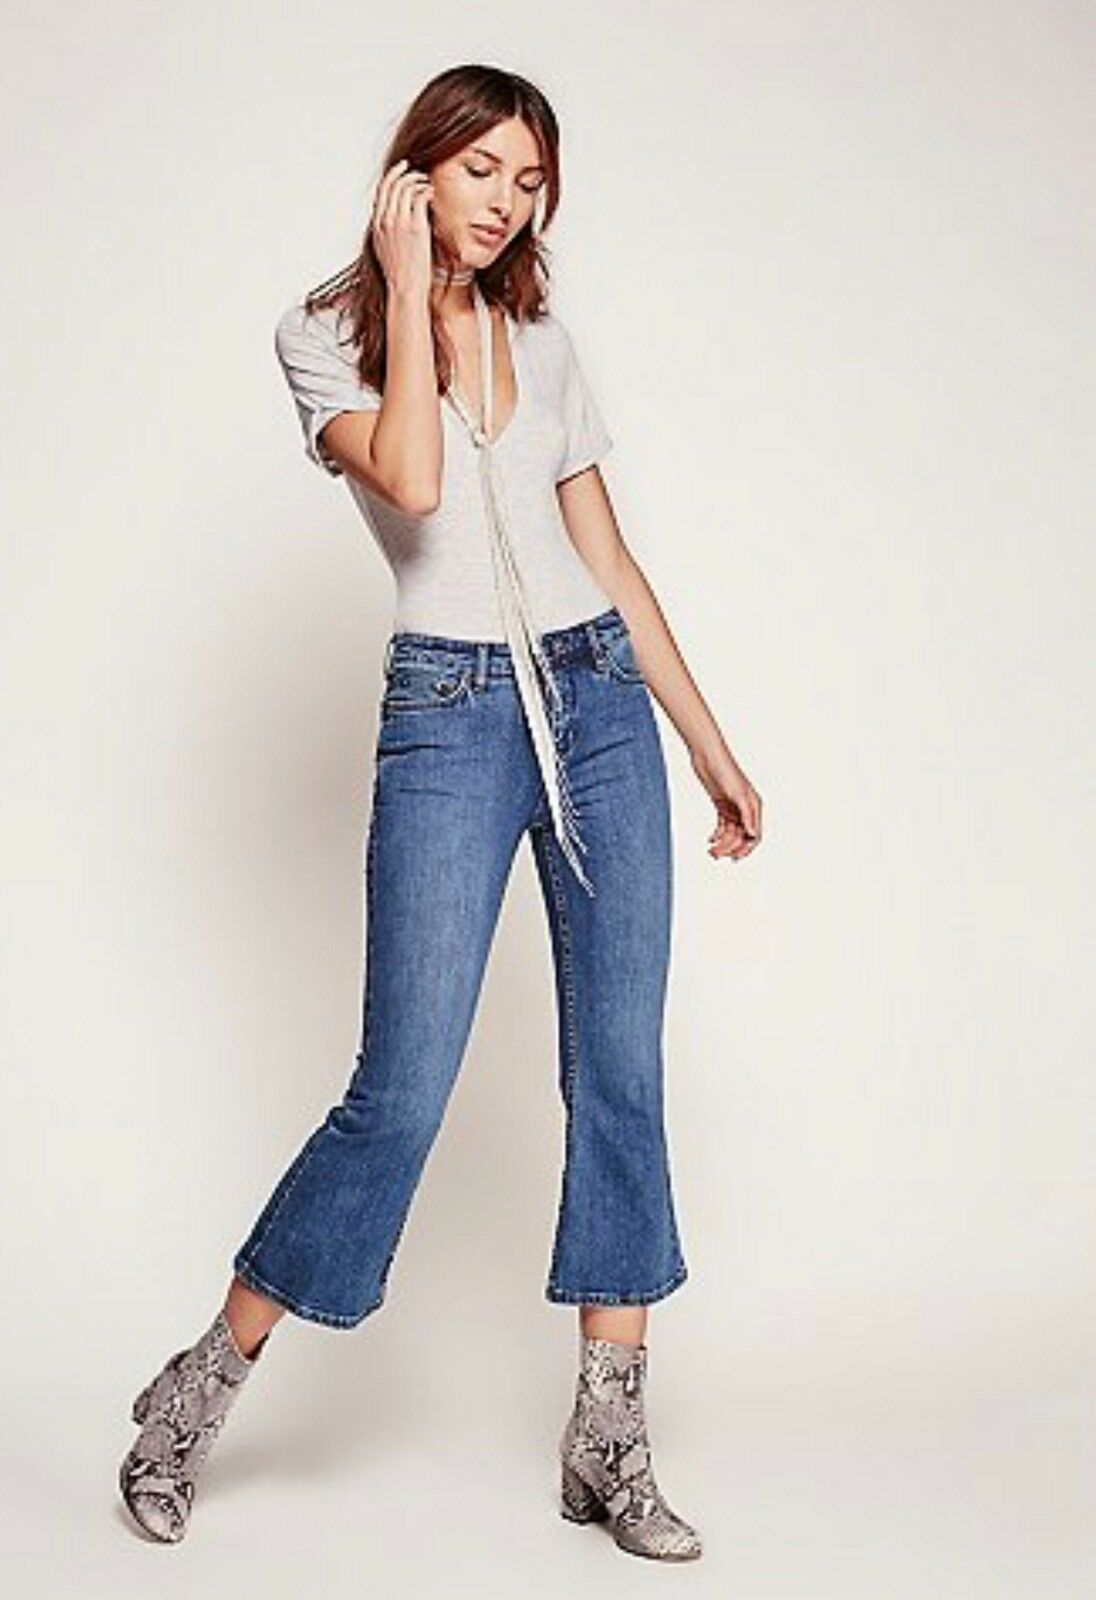 FREE PEOPLE CHLOE CROPPED FLARE JEANS SZ 24